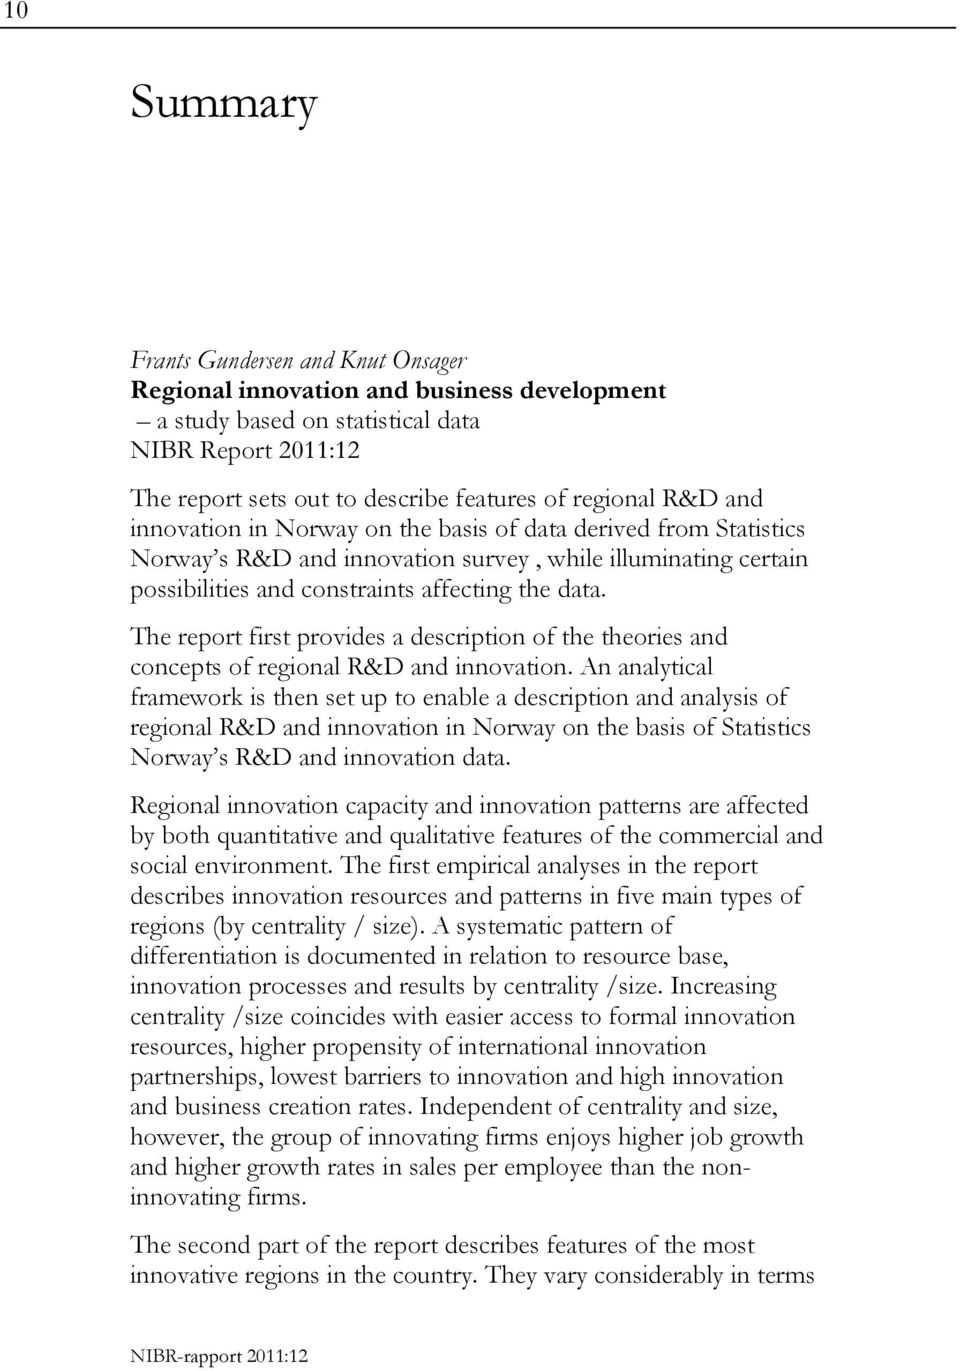 The report first provides a description of the theories and concepts of regional R&D and innovation.